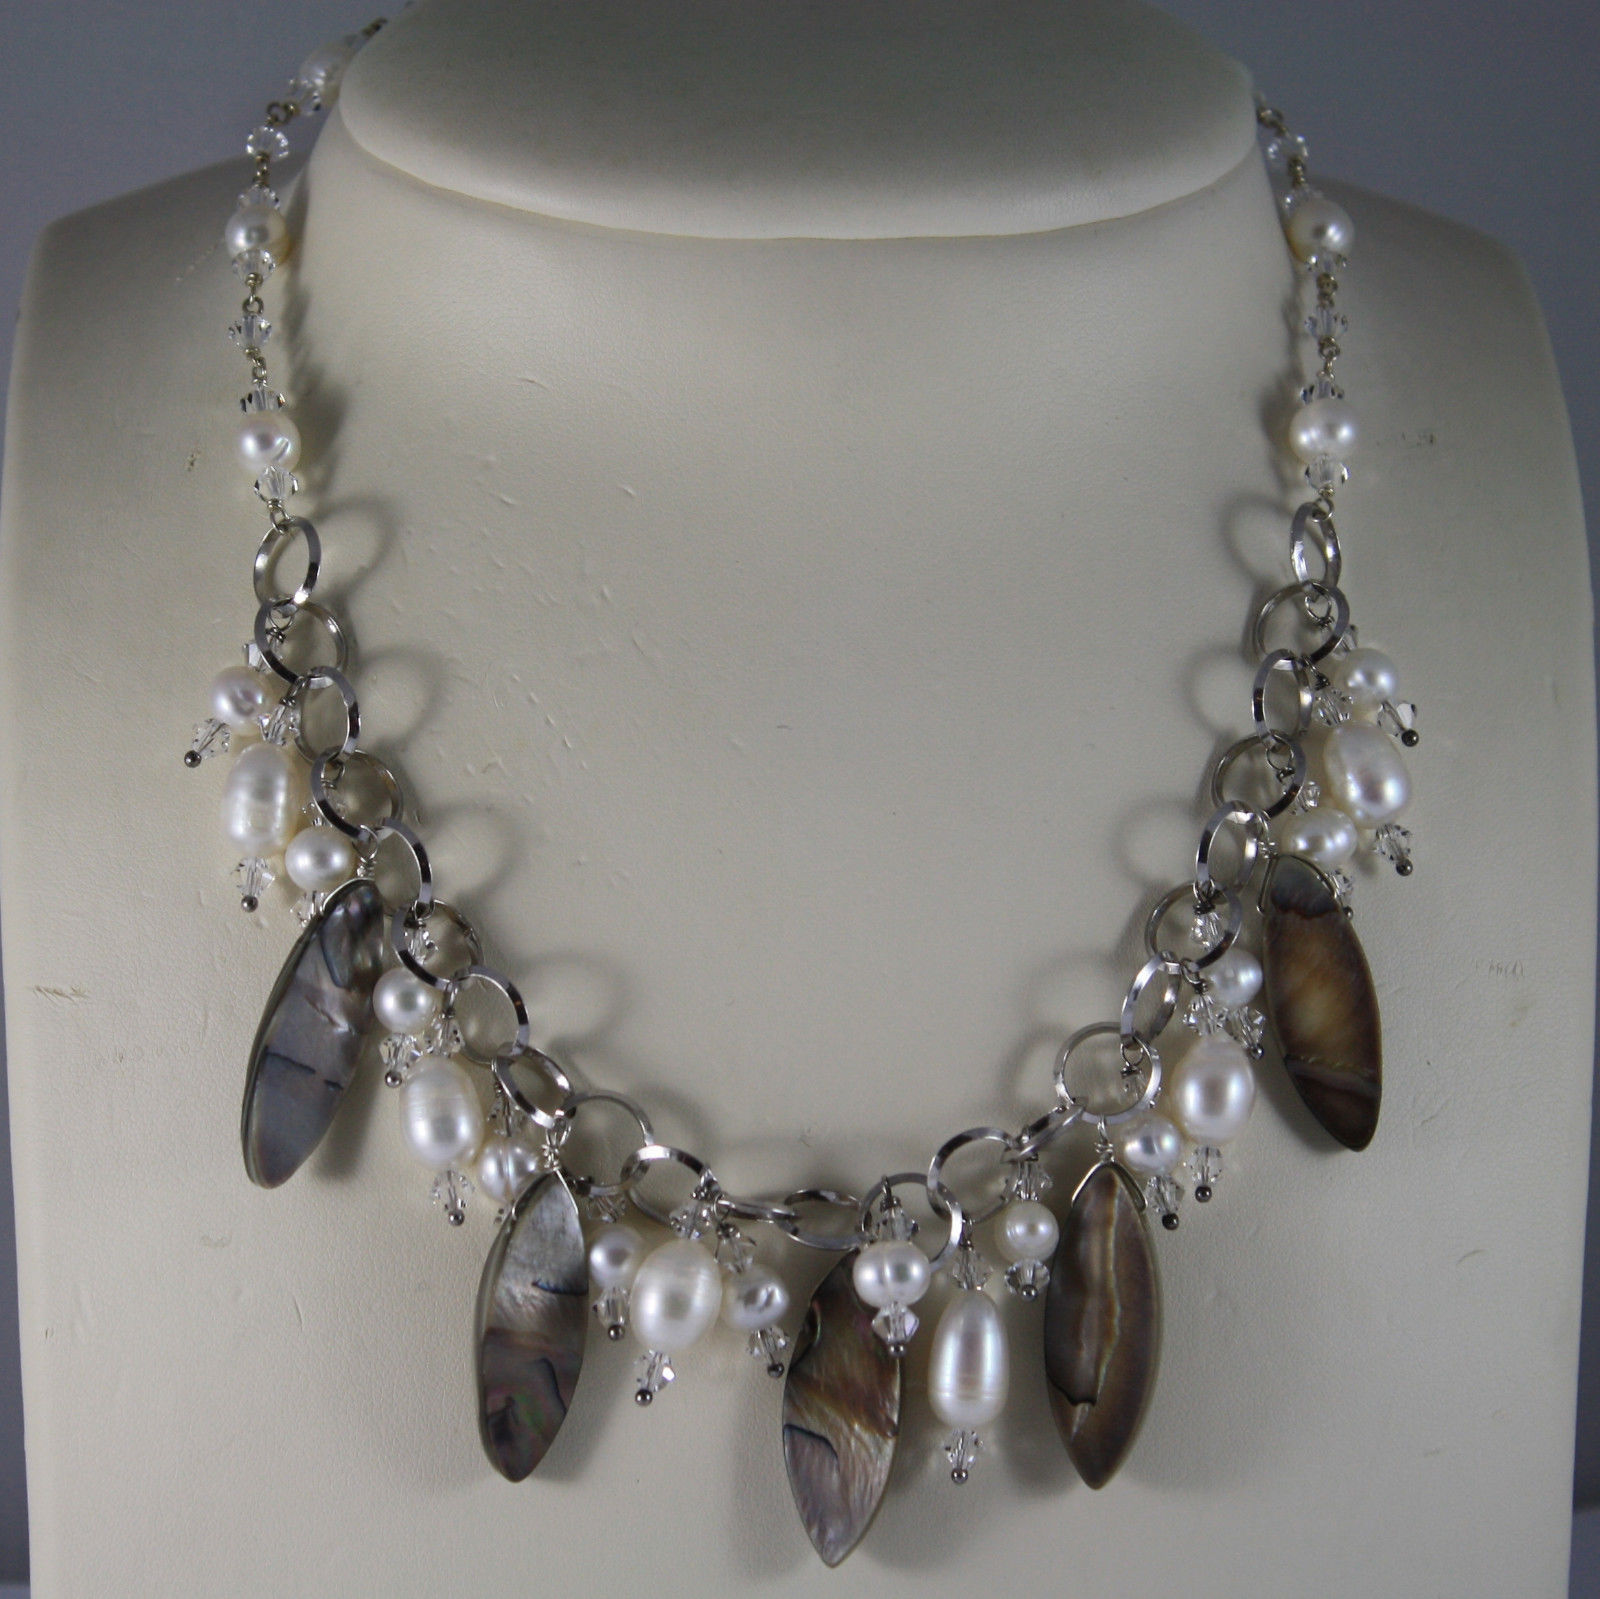 .925 RHODIUM SILVER NECKLACE WITH CRYSTALS, PEARLS AND OVAL MOTHER OF PEARL